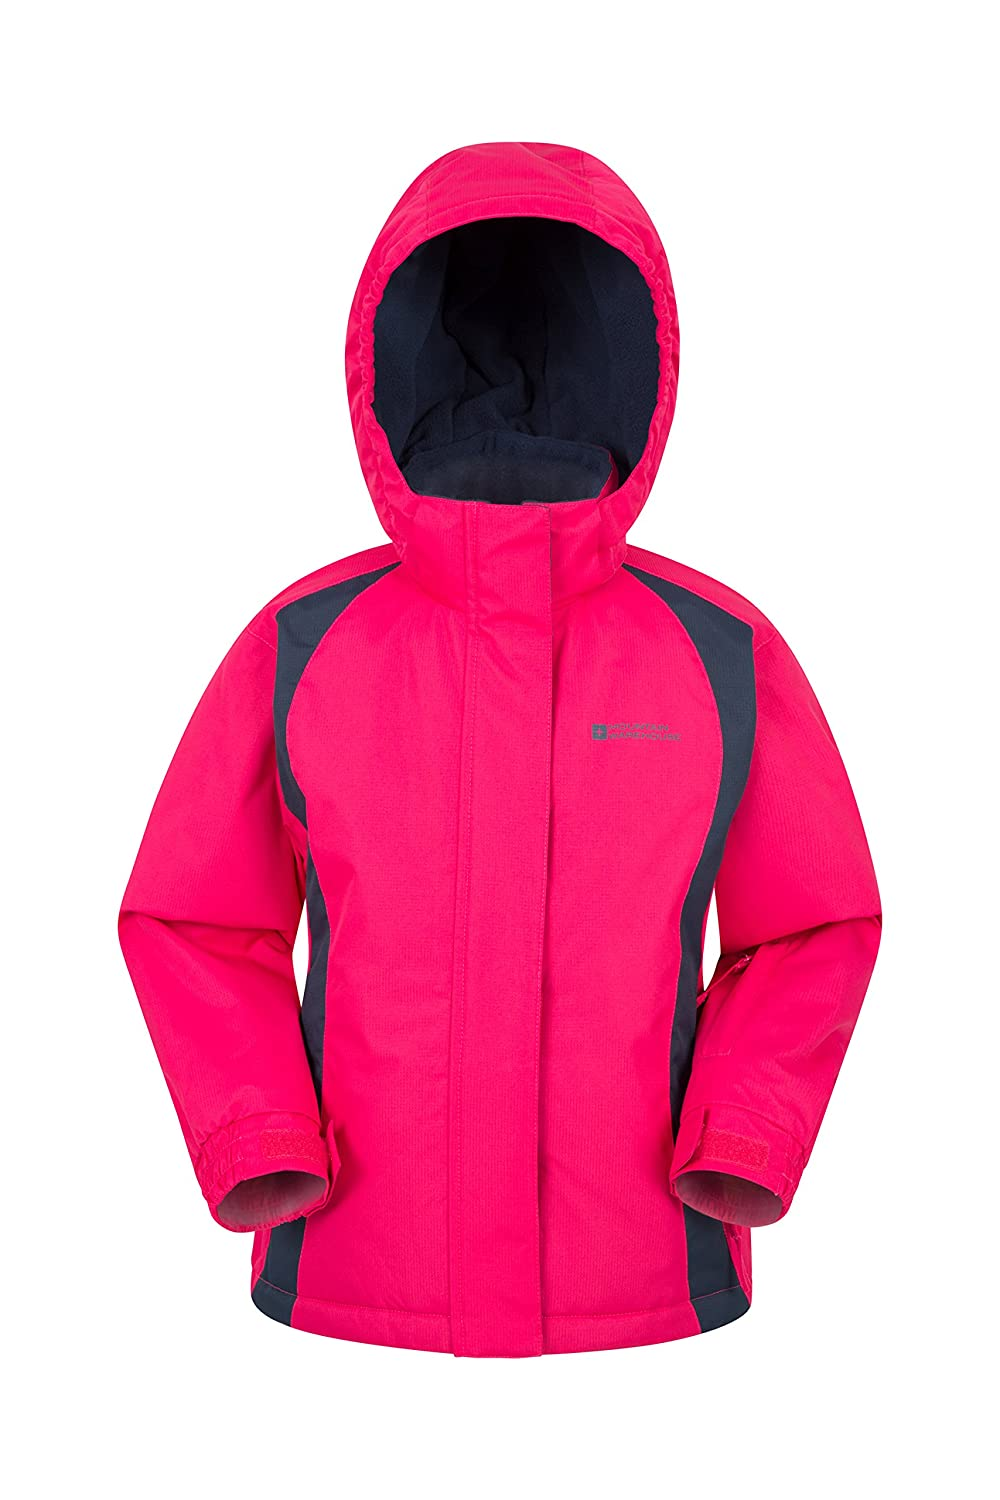 2ae40aa2053 Amazon.com   Mountain Warehouse Honey Kids Ski Jacket - Boys   Girls Winter  Coat   Sports   Outdoors